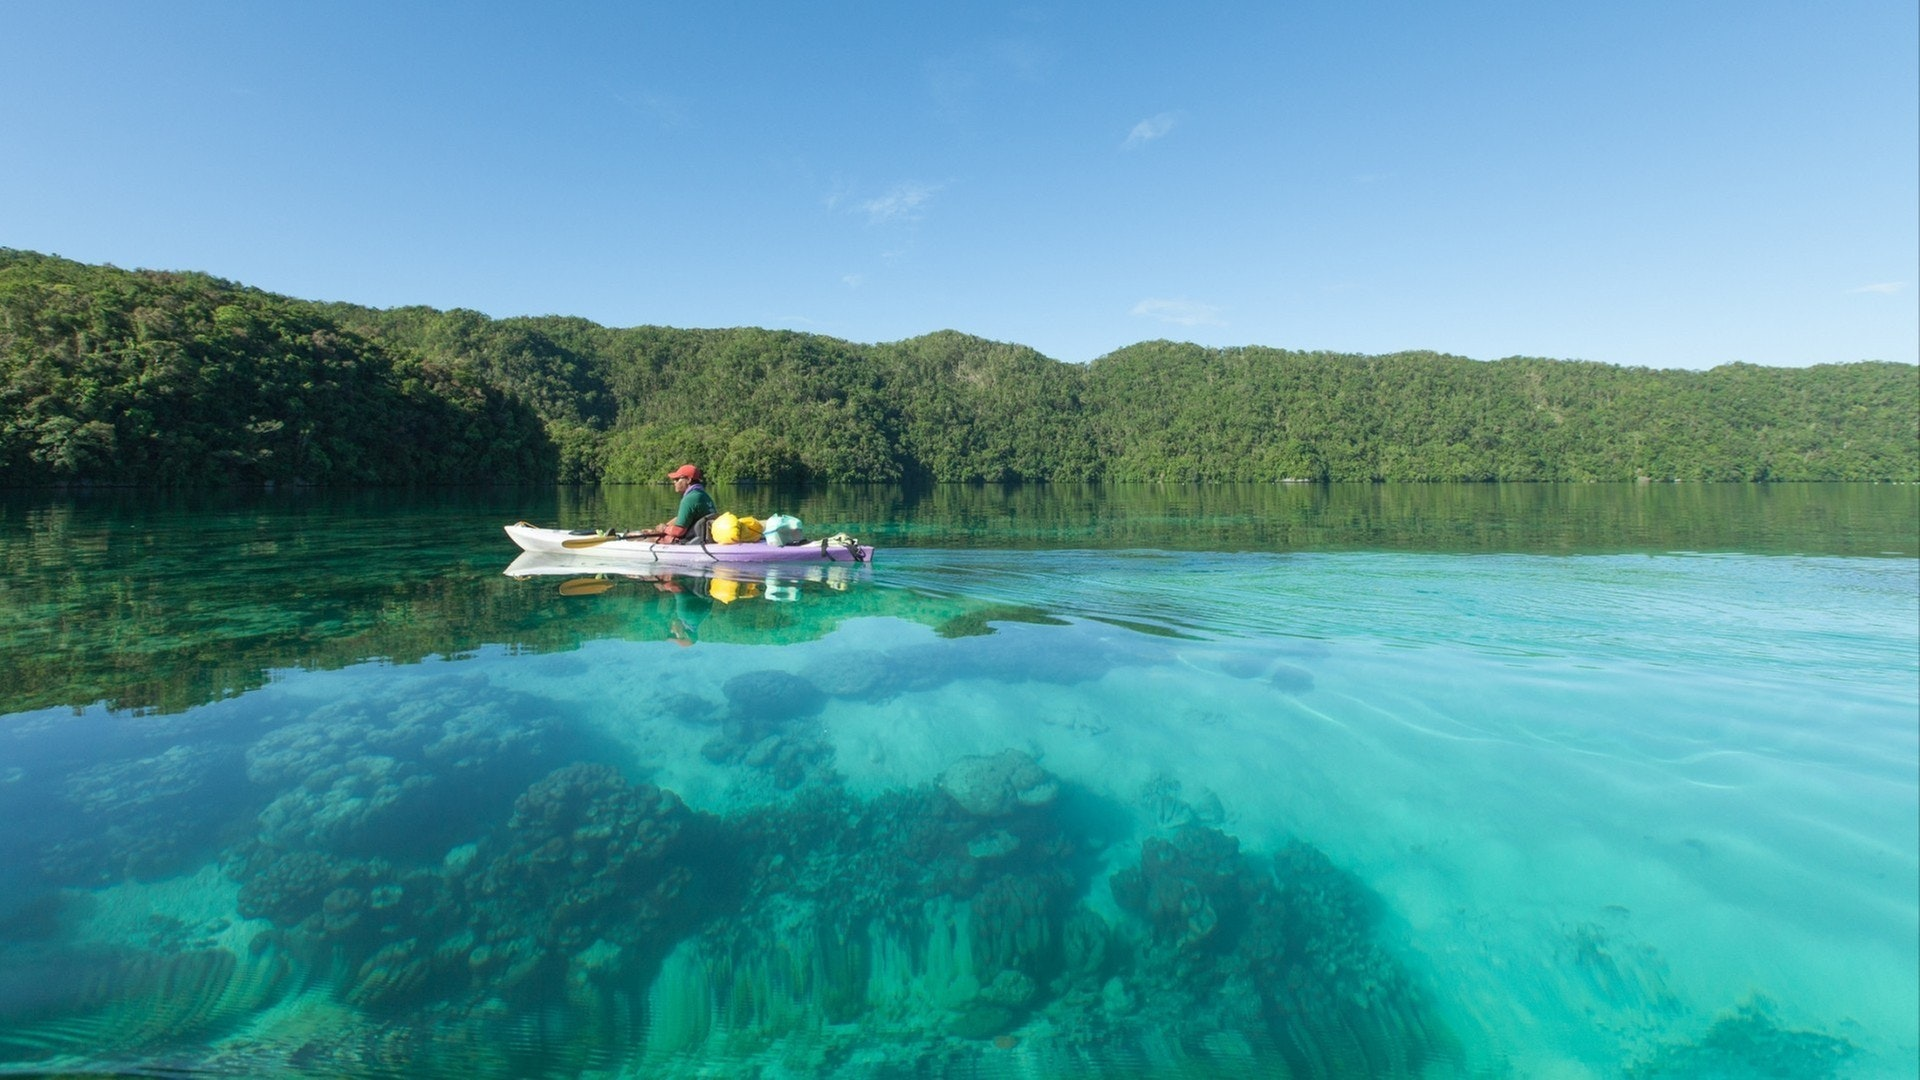 Man paddling his kayak on clear turquoise water of a tropical lagoon